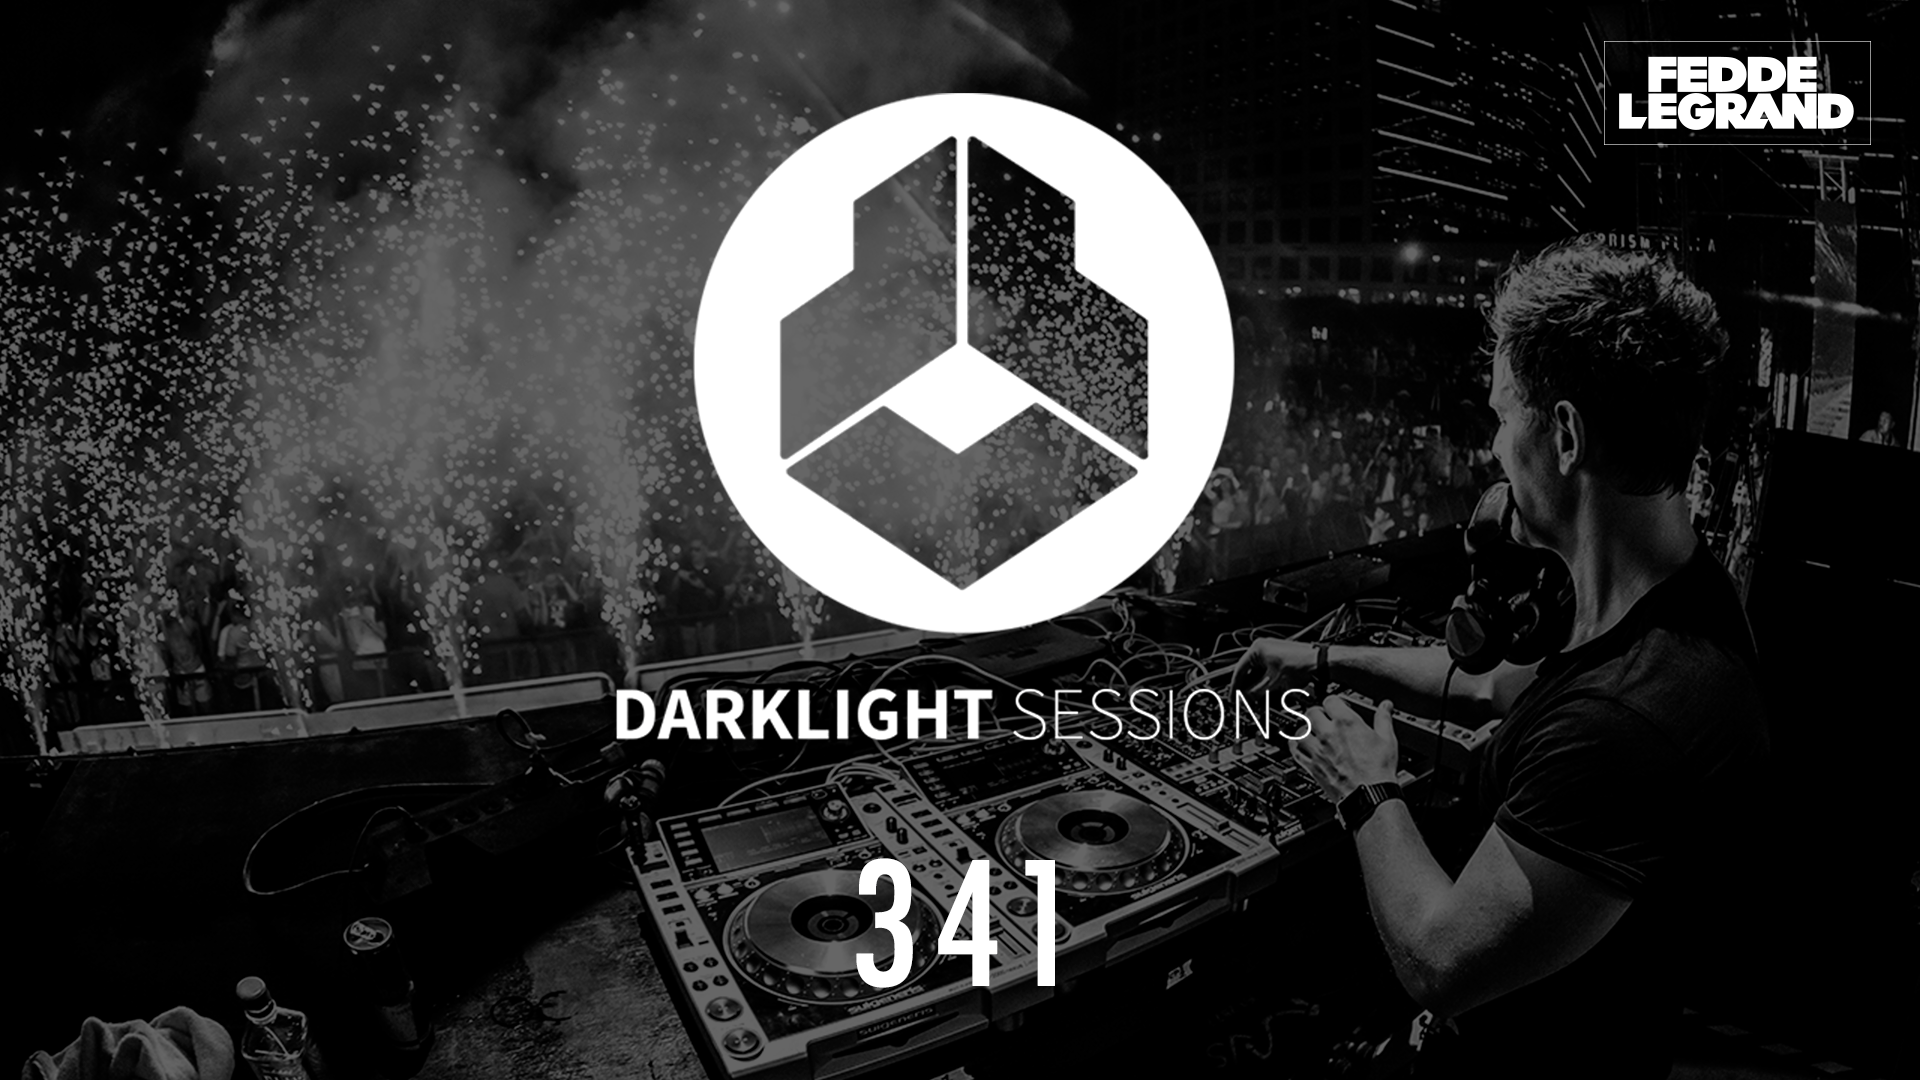 Darklight Sessions 341